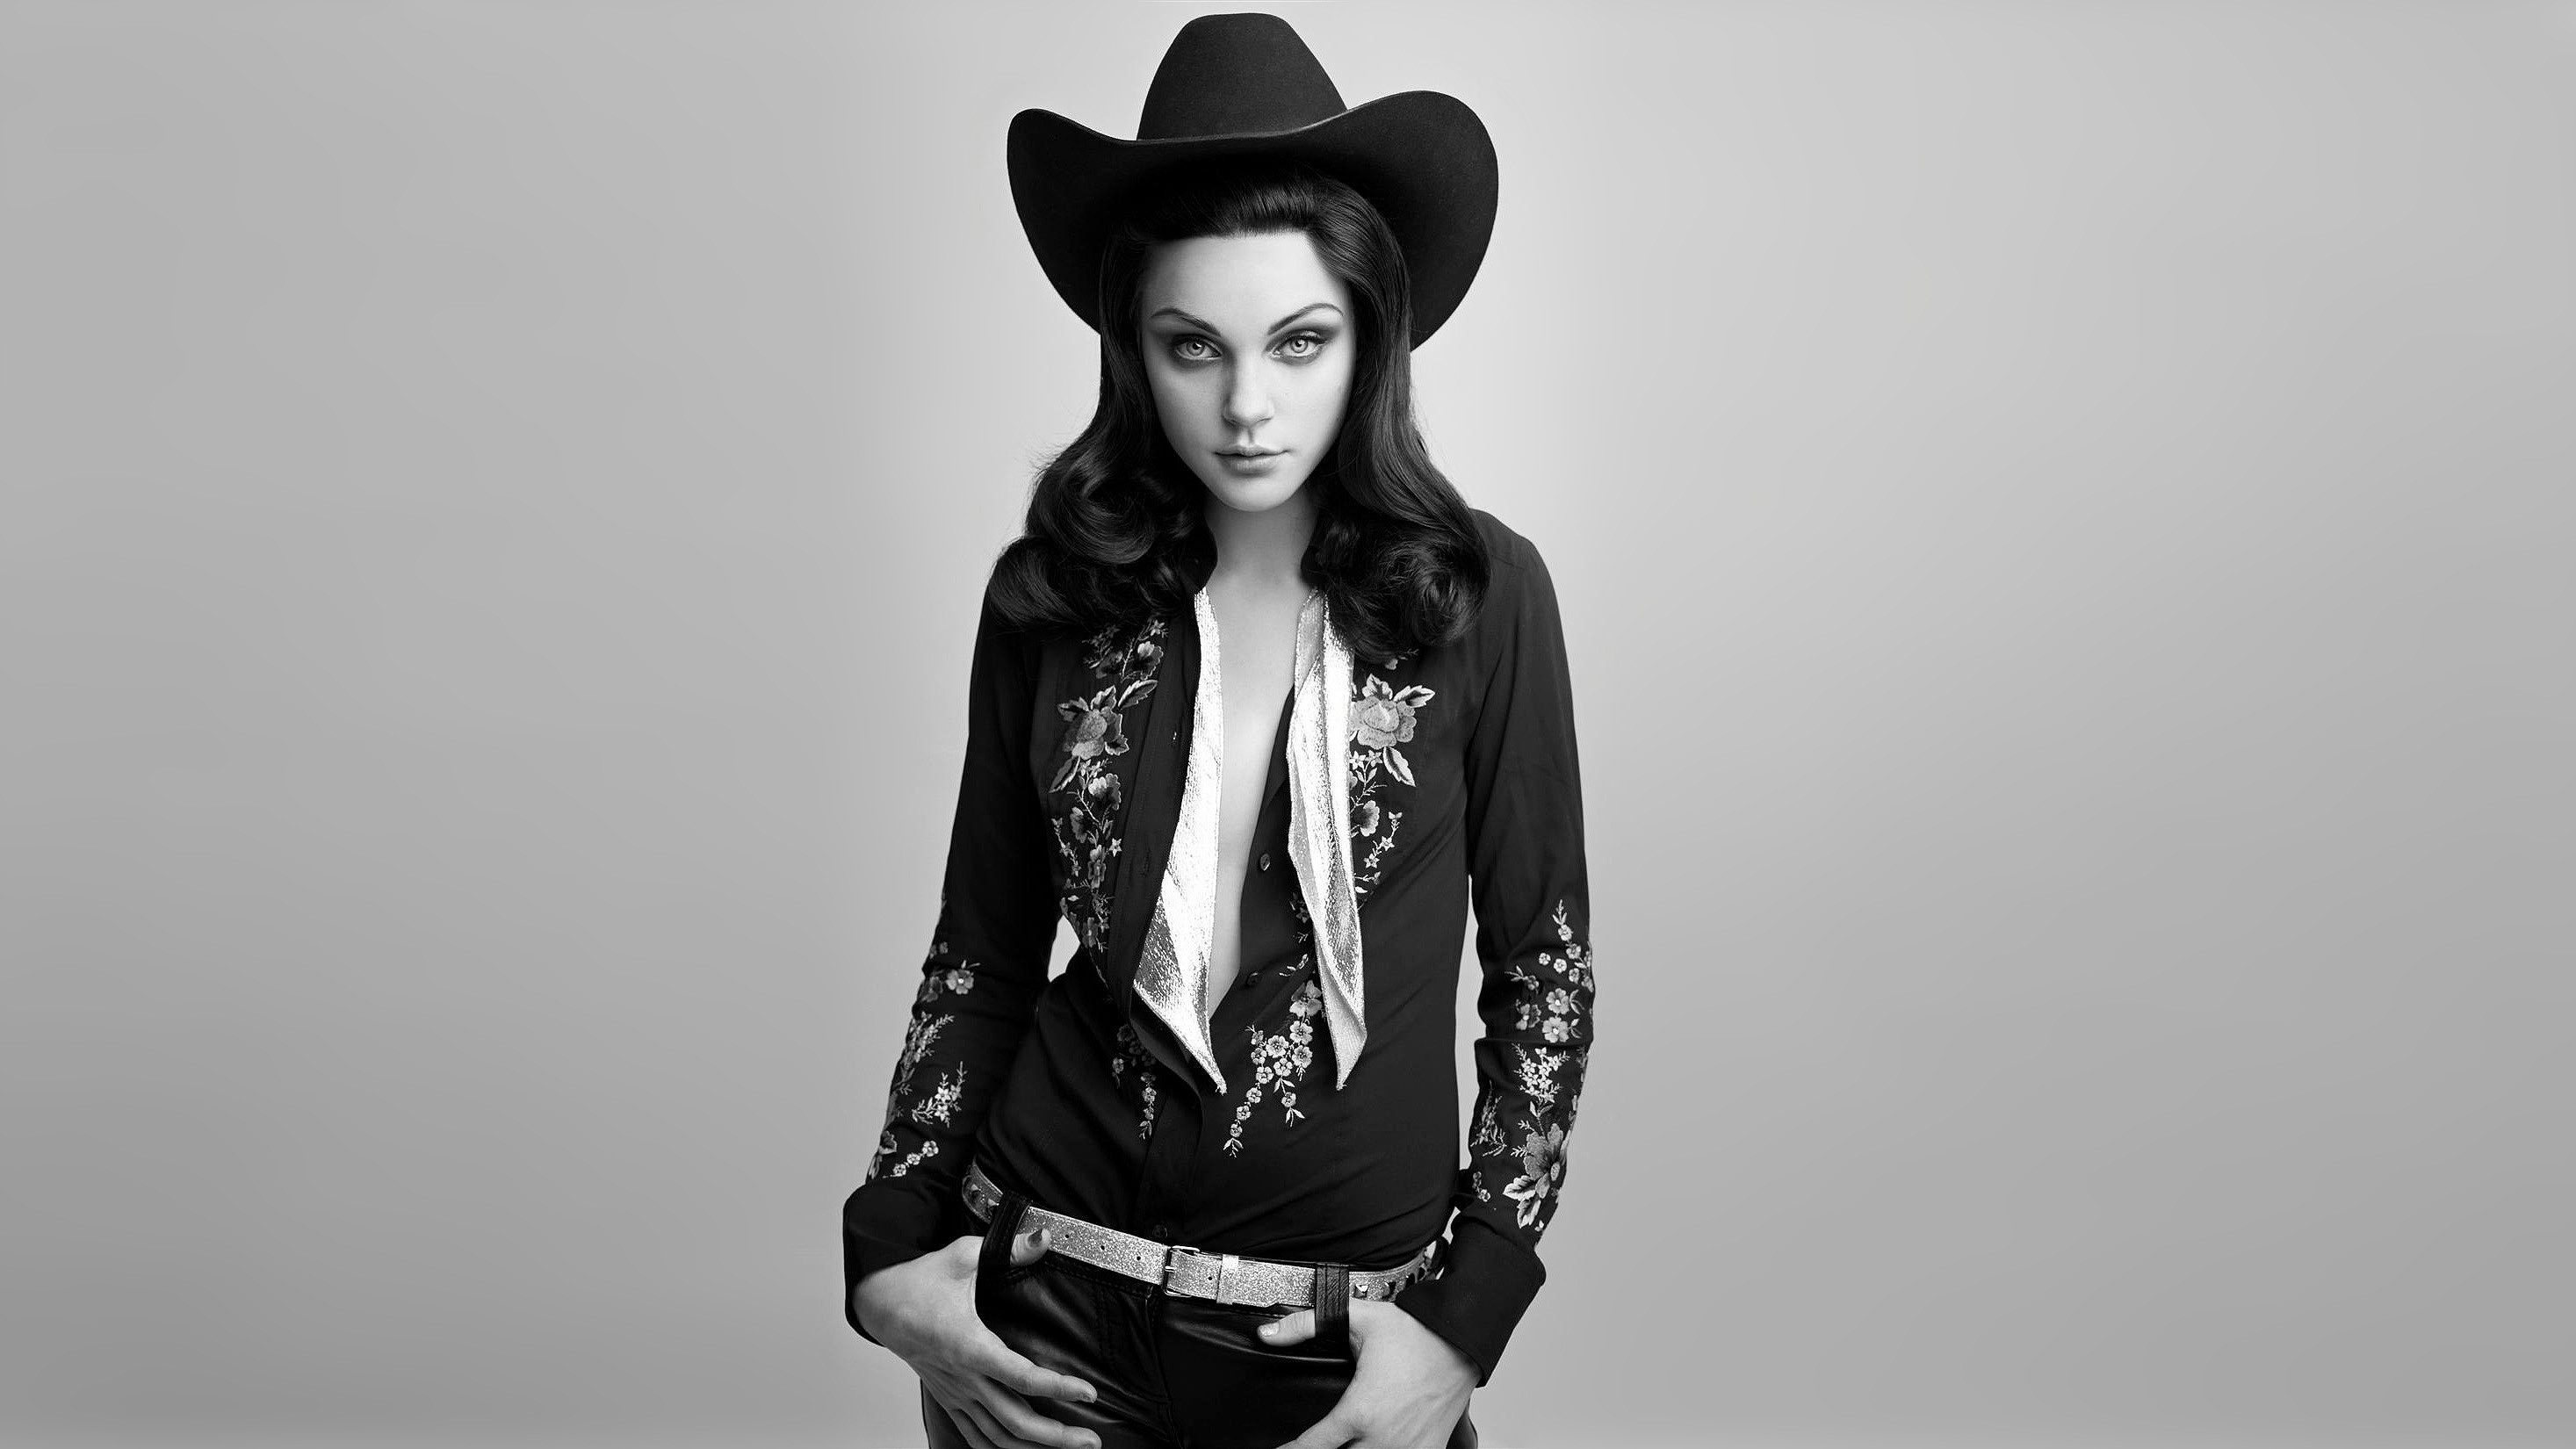 People 2933x1650 monochrome women Jessica Stam looking at viewer hat simple background cowboy hats